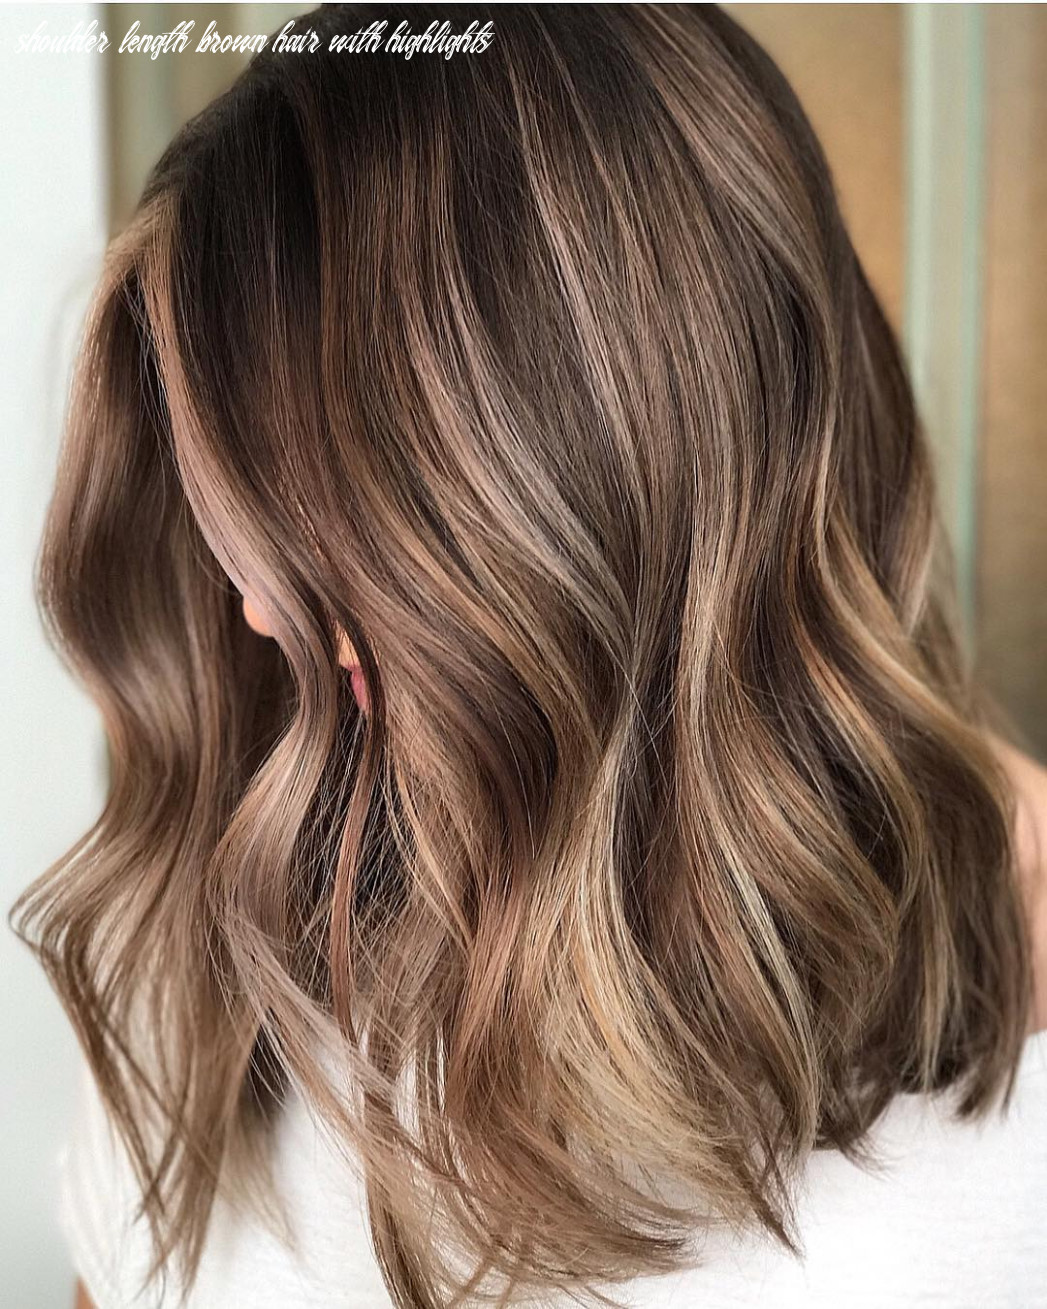 11 trendy brown balayage hairstyles for medium length hair 11 shoulder length brown hair with highlights